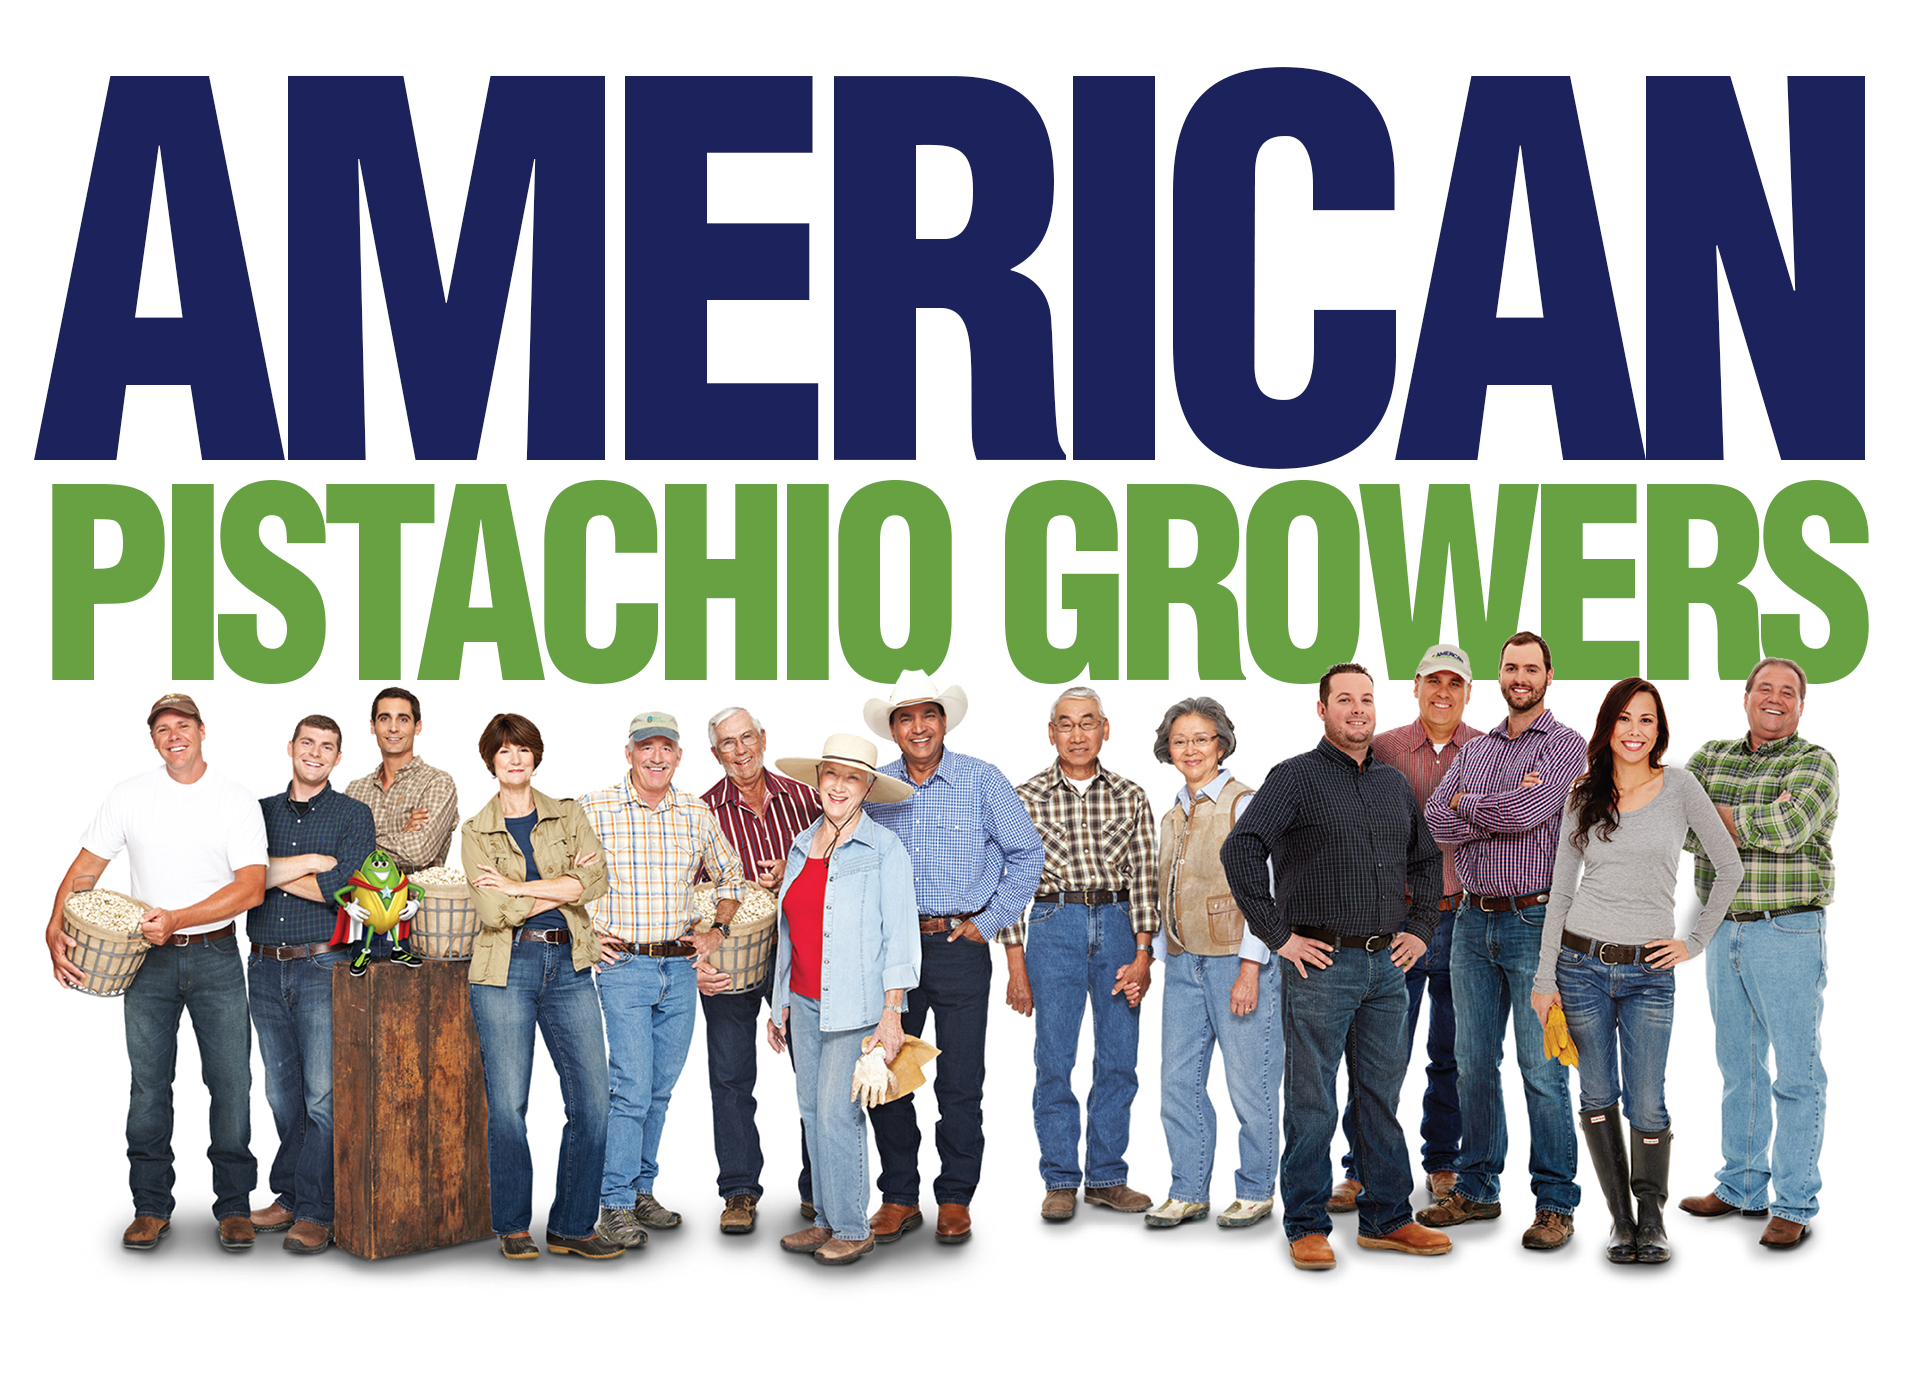 American Pistachio Growers